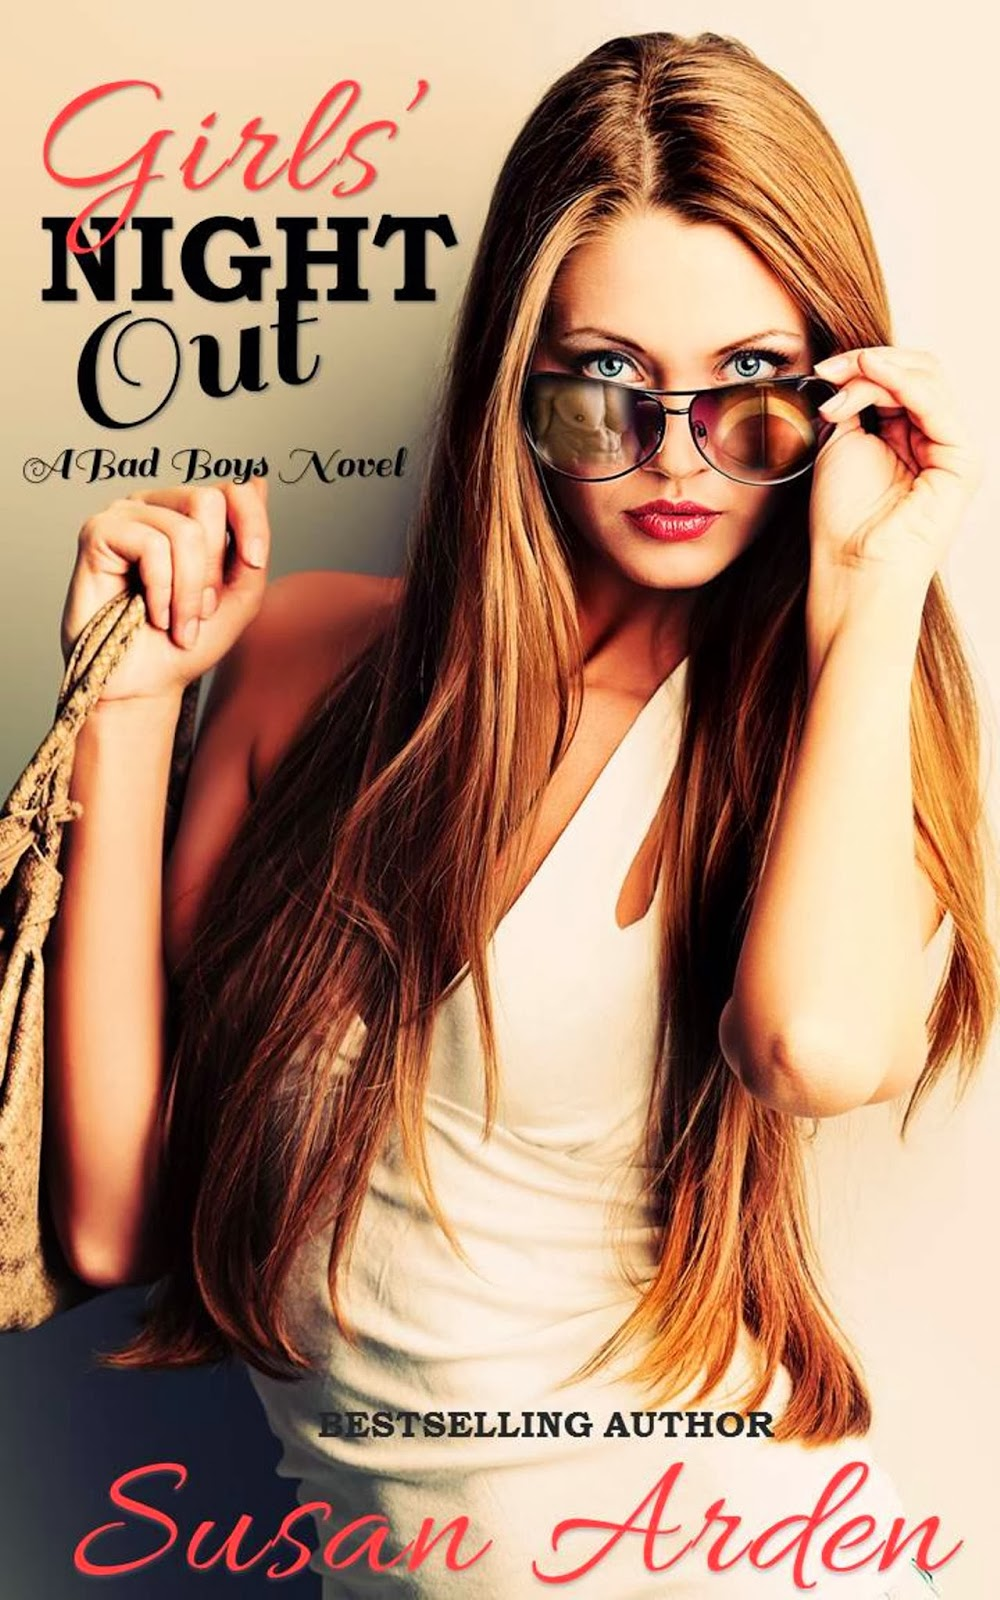 http://www.amazon.com/Girls-Night-Out-Boys-Volume/dp/1494937751/ref=sr_1_cc_1?s=aps&ie=UTF8&qid=1390618587&sr=1-1-catcorr&keywords=Girls+Night+Out+Susan+Arden